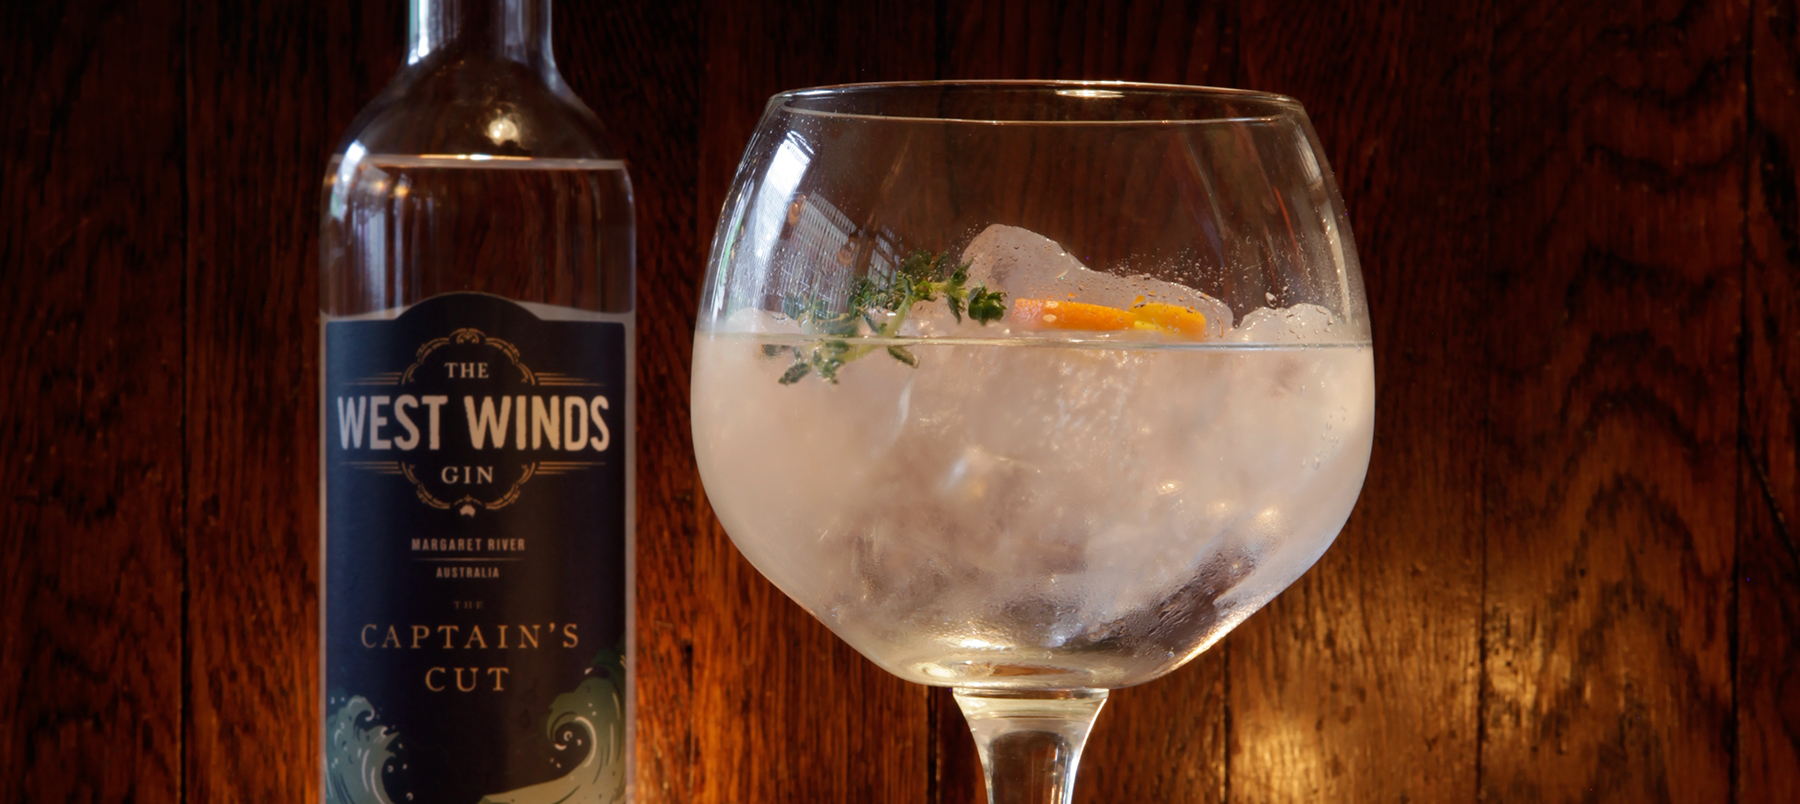 Gin review: The West Winds: The Captain's Cut 63% abv